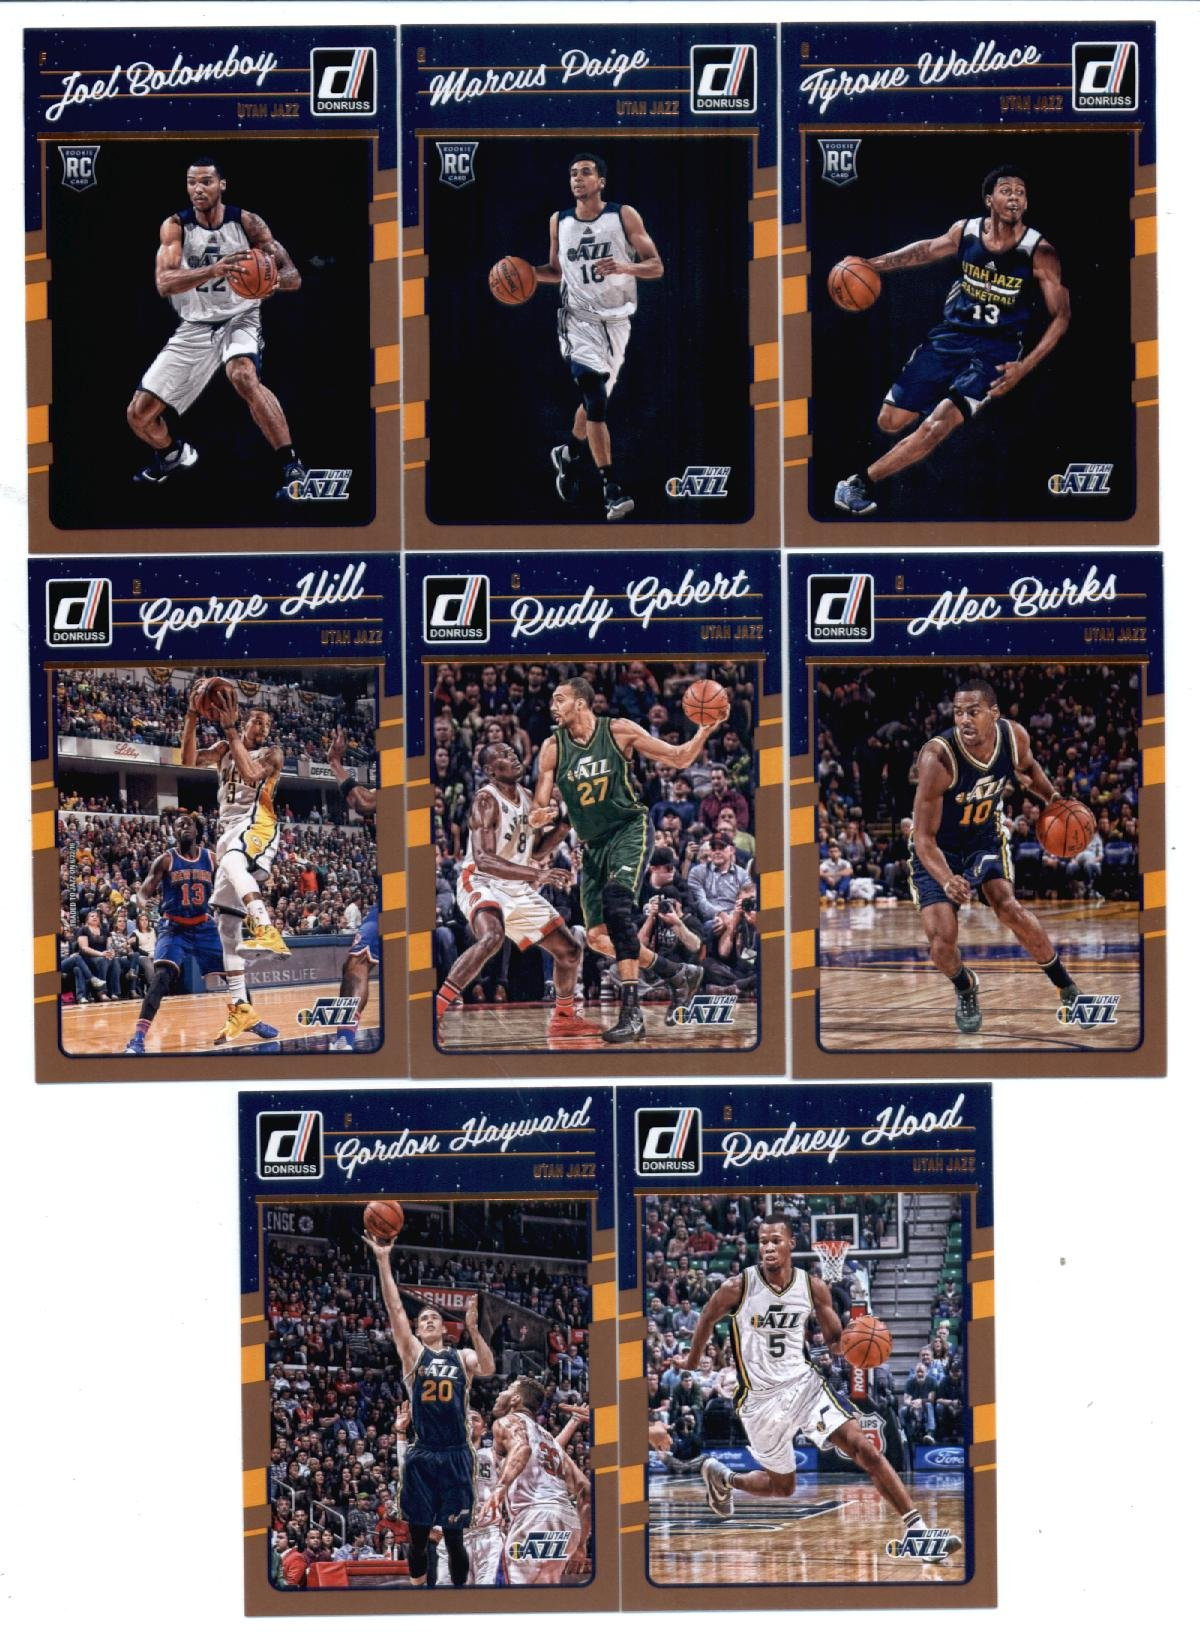 2016-17 Donruss Basketball Utah Jazz Team Set of 8 Cards in 4-Pocket Collector's Album which includes: Alec Burks(#49), Rudy Gobert(#50), George Hill(#51), Gordon Hayward(#52), Rodney Hood(#53), Joel Bolomboy(#191), Marcus Paige(#193), Tyrone Wallace(#197)